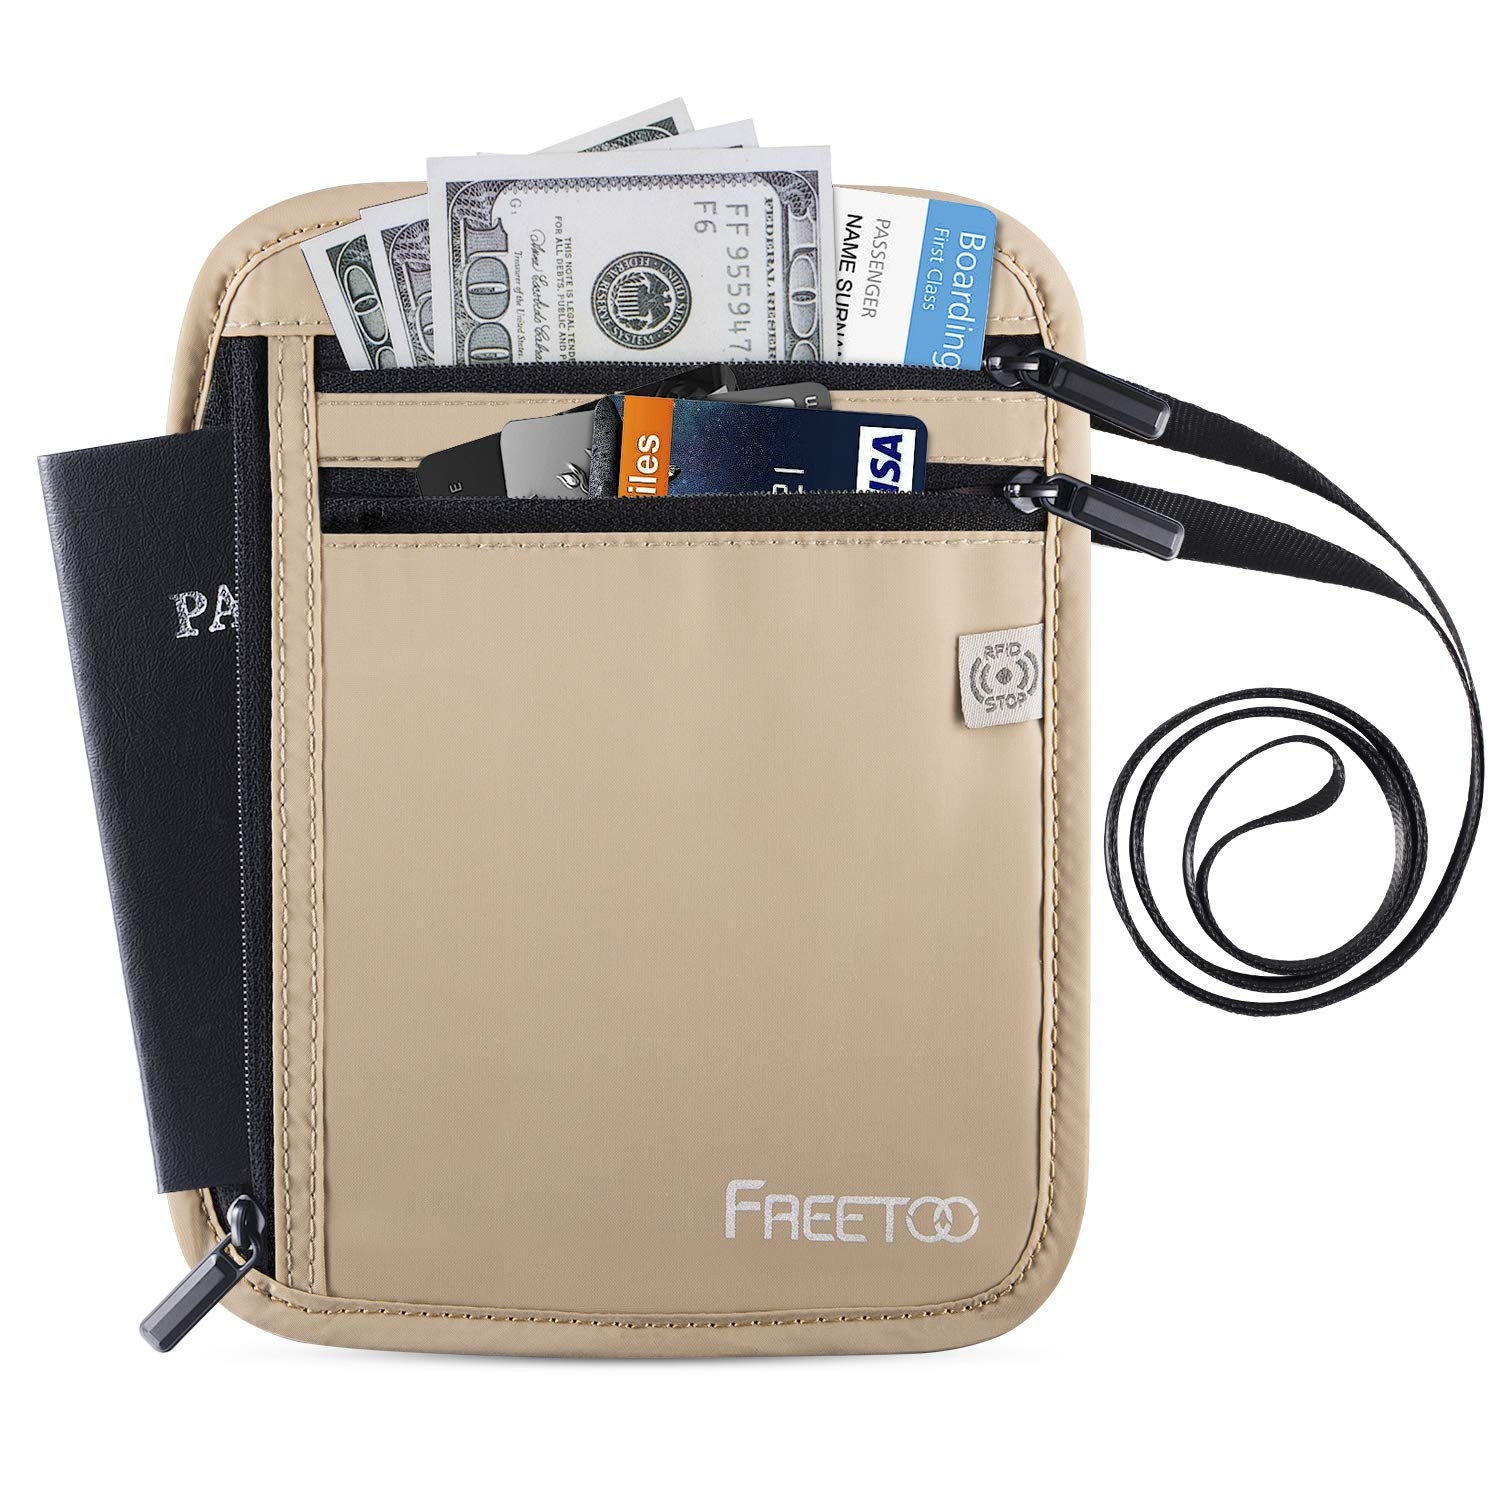 4474d20a11d8 FREETOO Neck Wallet-Travel Neck Pouch Water-Resistant Hidden Passport  Holder with RFID Blocking for Women Men Fit for Passport Credit Cards Money  and ...